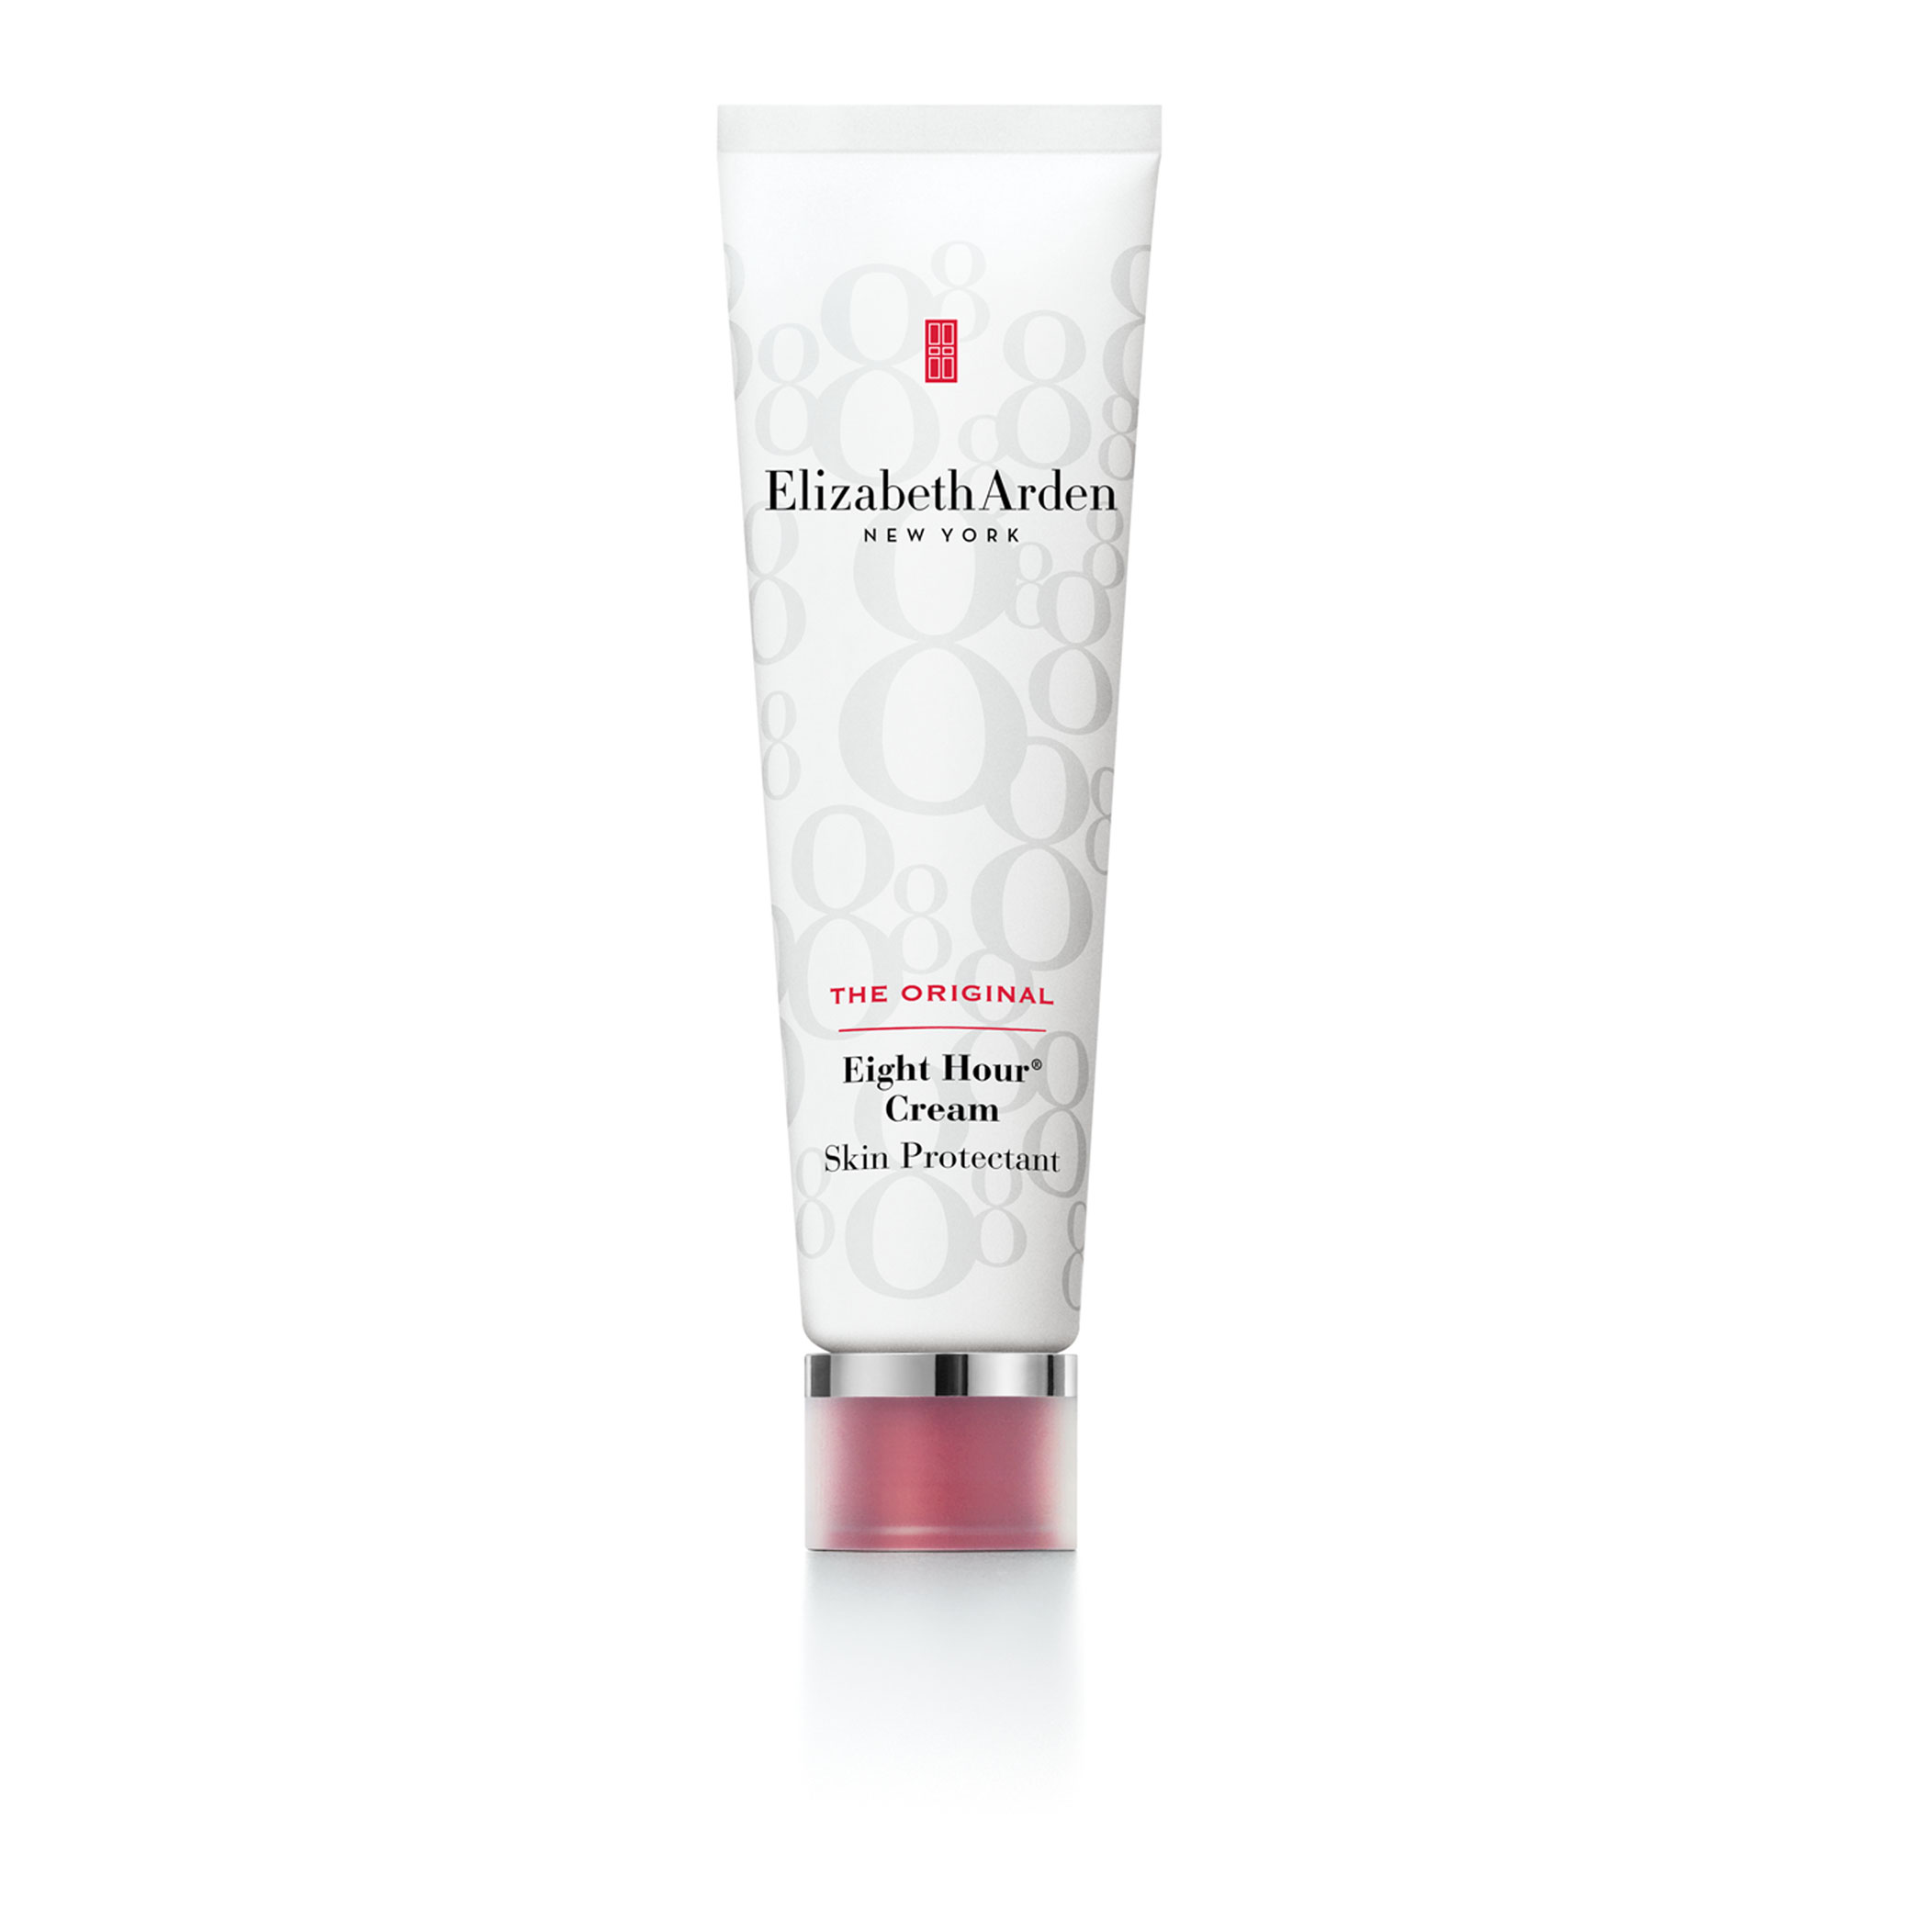 De Eight Hour Cream van Elizabeth Arden - €27.56